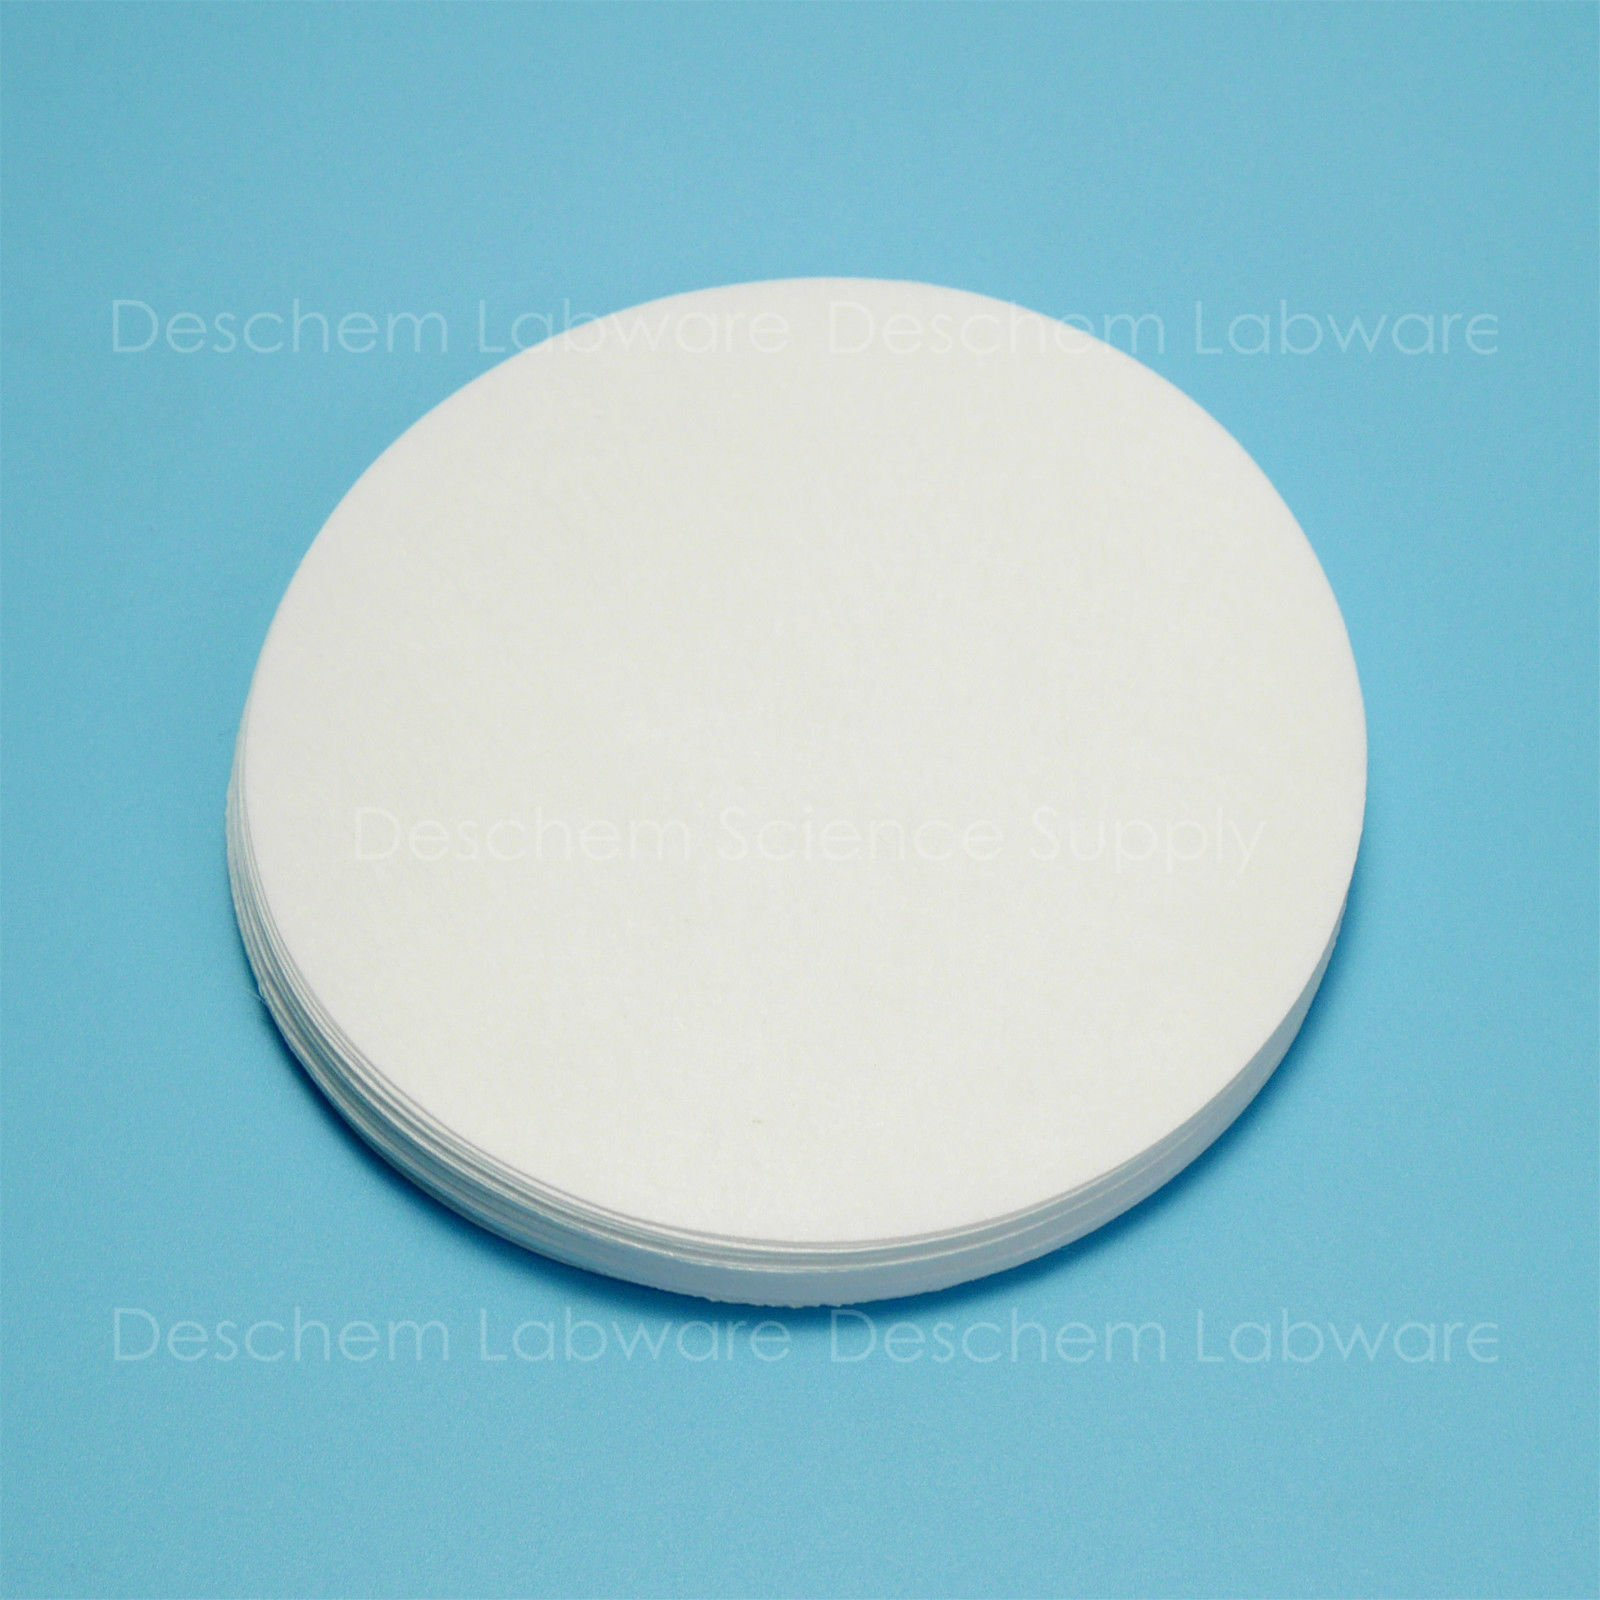 Deschem 100mm CA Membrane Filter,10cm,Made by Cellulose Acetate,50 Pcs/Pack by Deschem